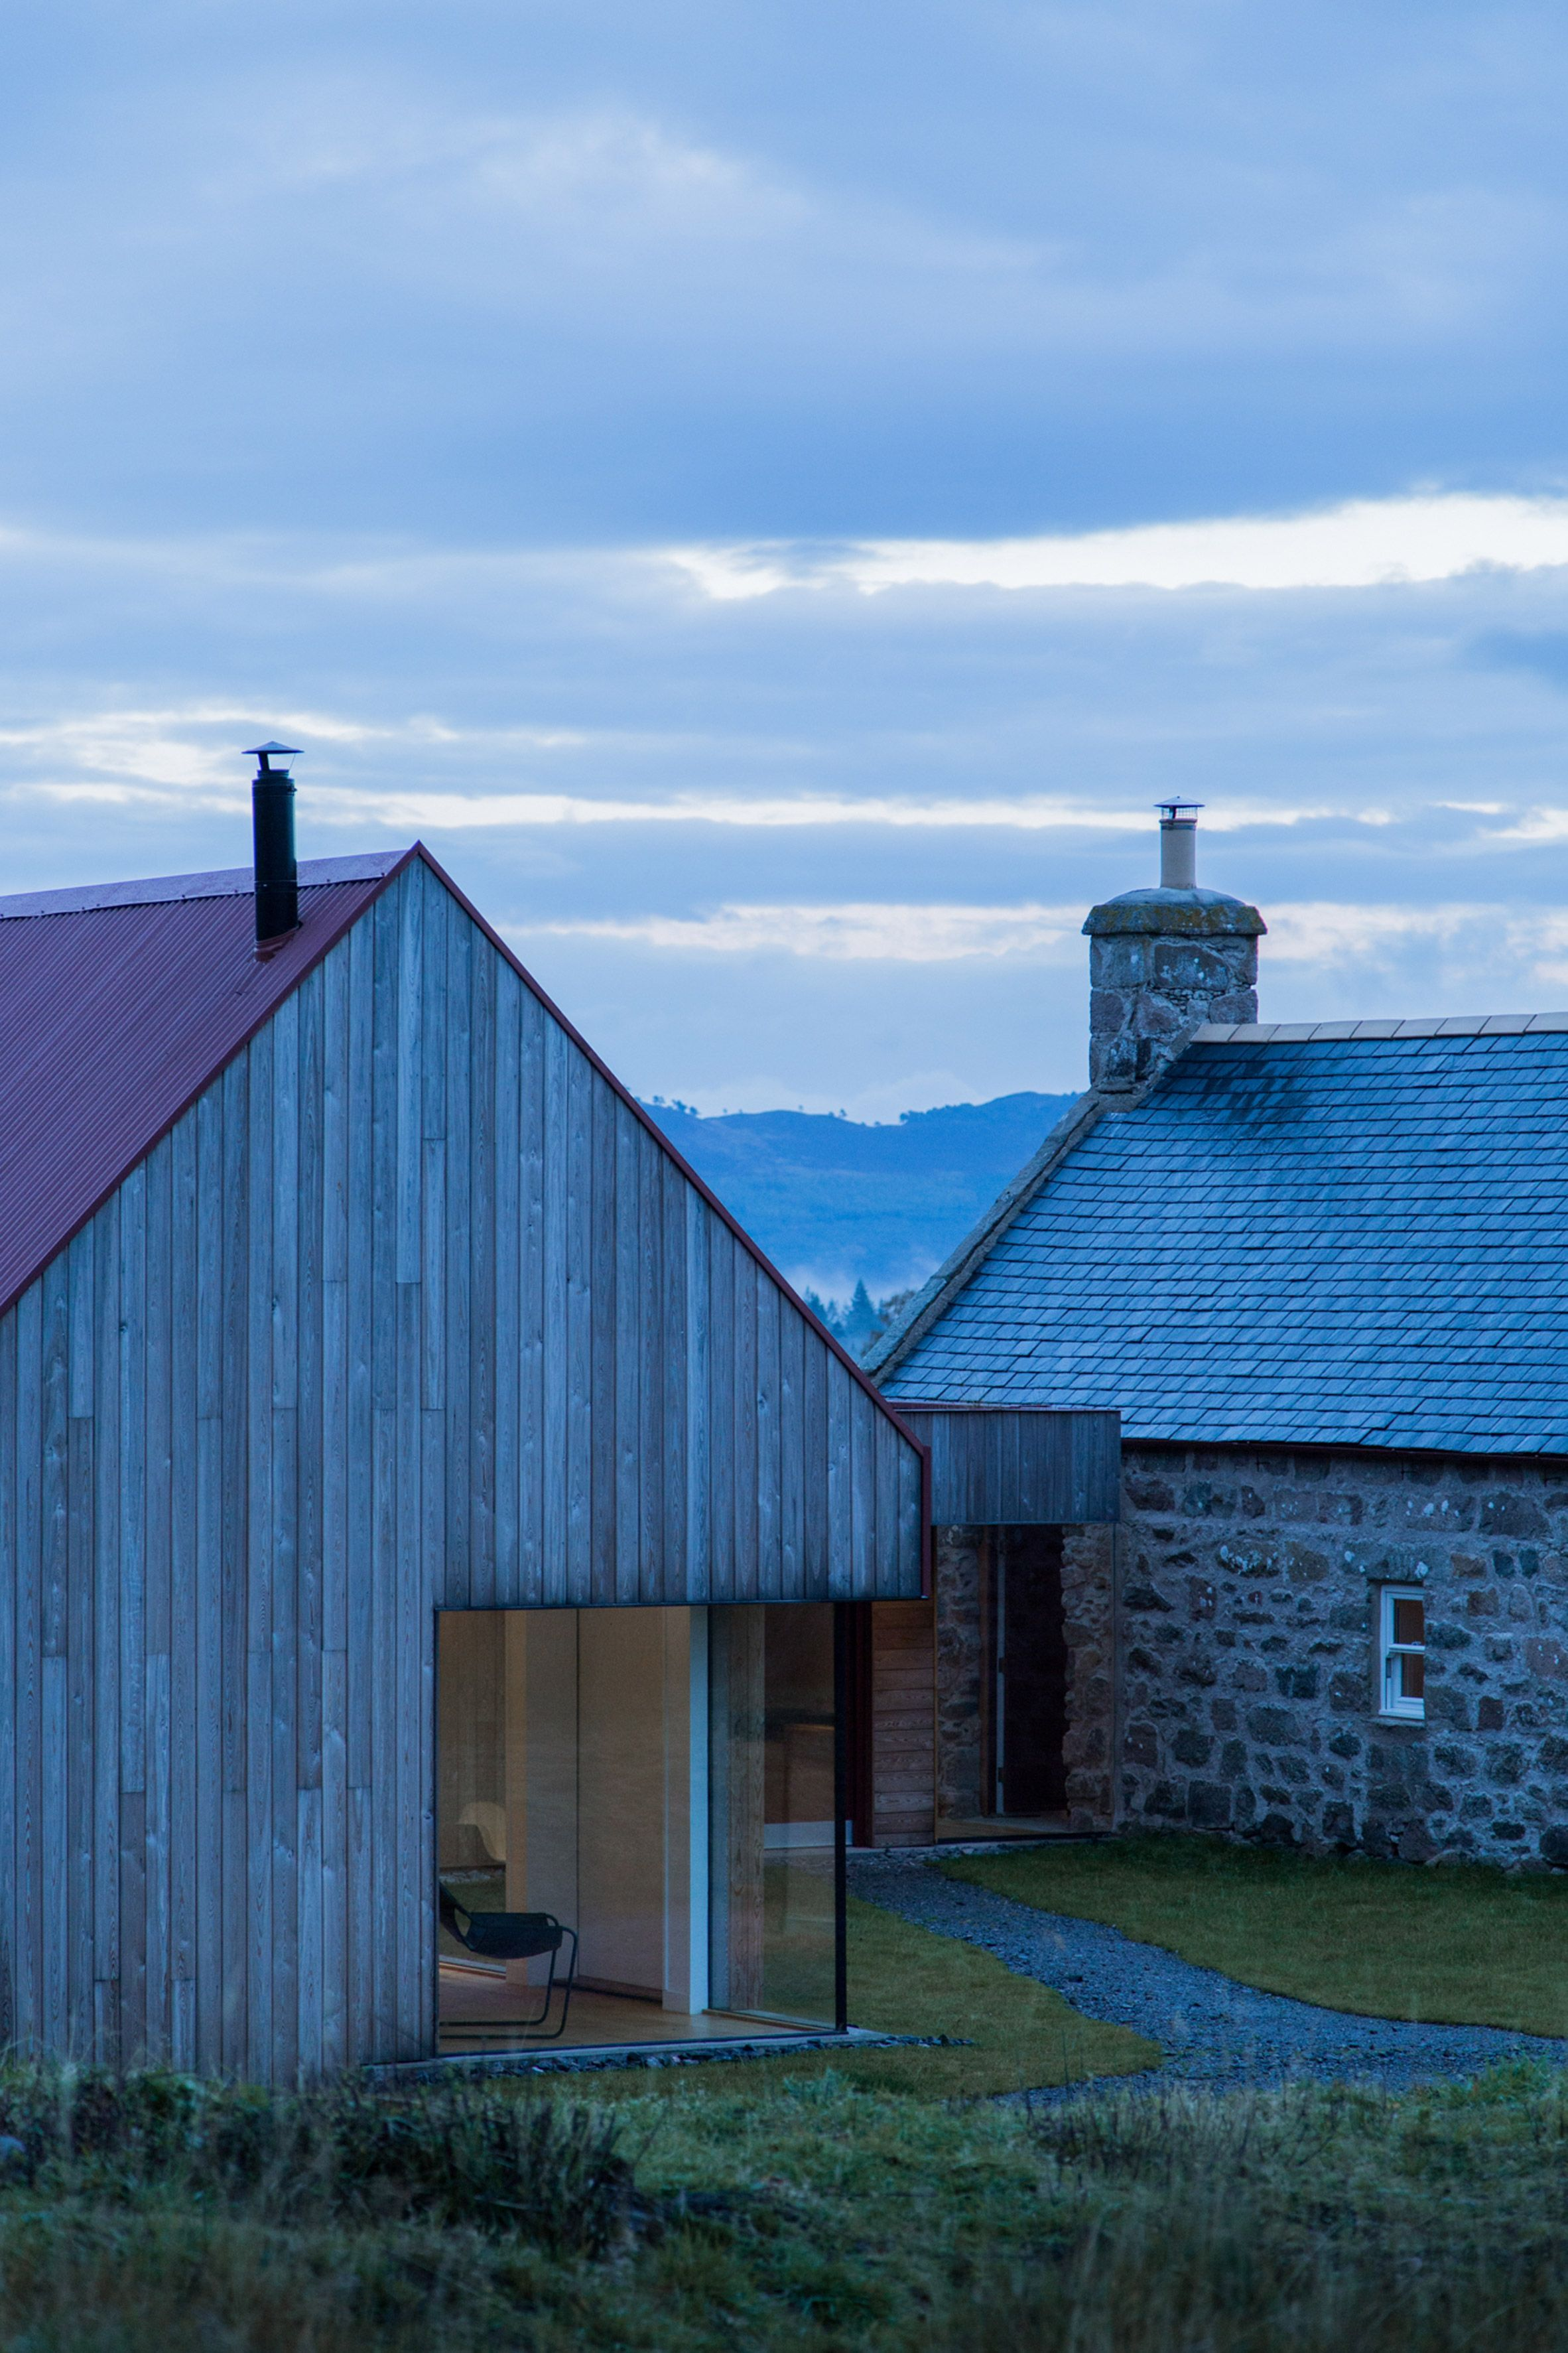 London Studio Moxon Has Restored An Old Granite Farmhouse In The Scottish Highlands And Added A Lar Barn Style House Farmhouse Architecture Rural Architecture